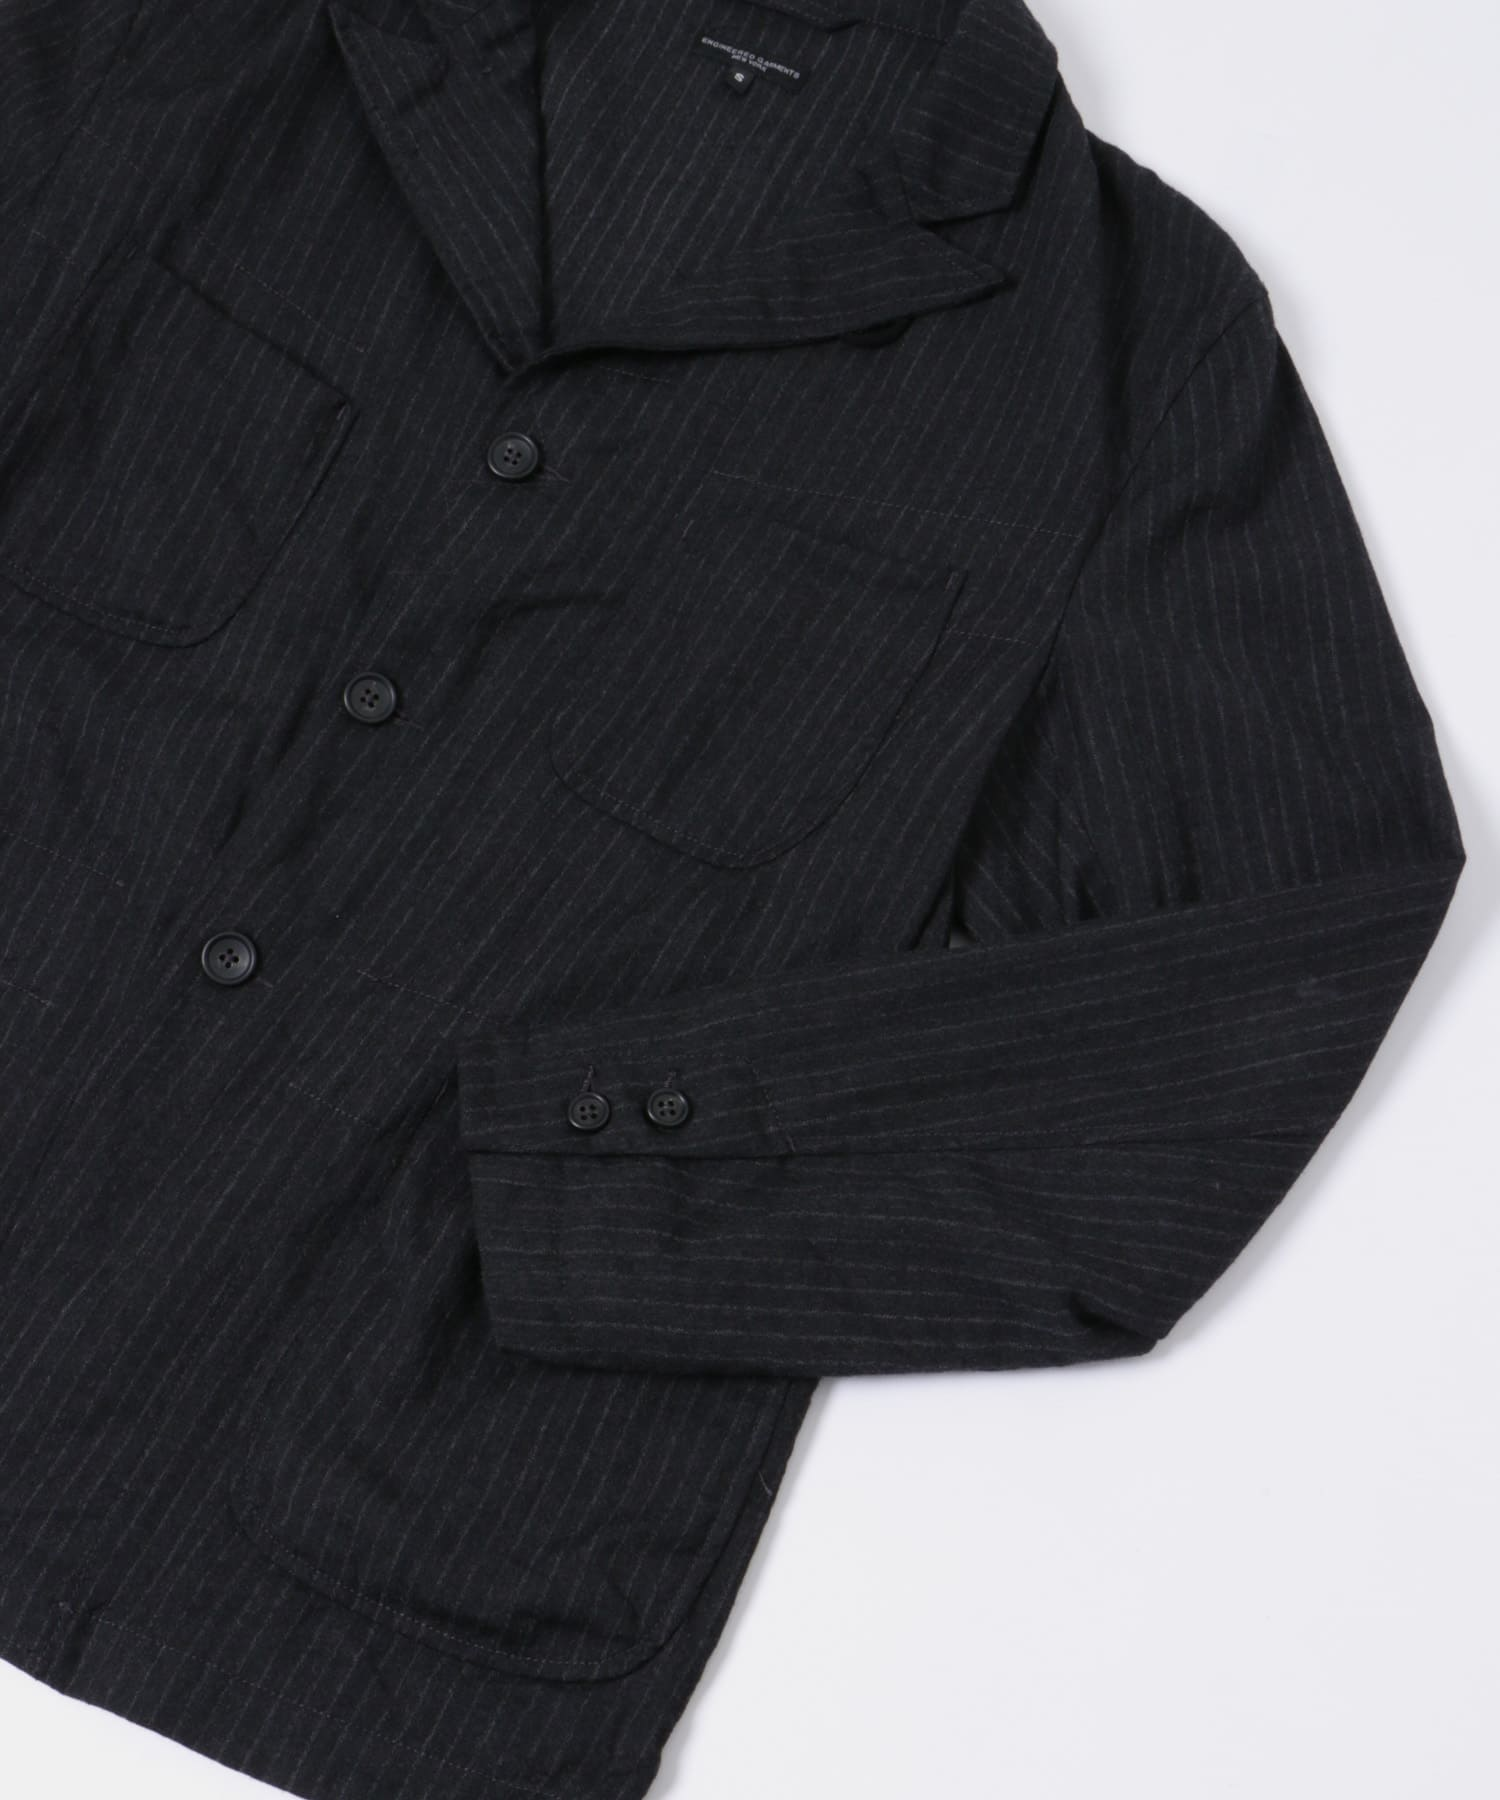 NB Jacket - Wool Chalk Stripe FG219: Charcoal